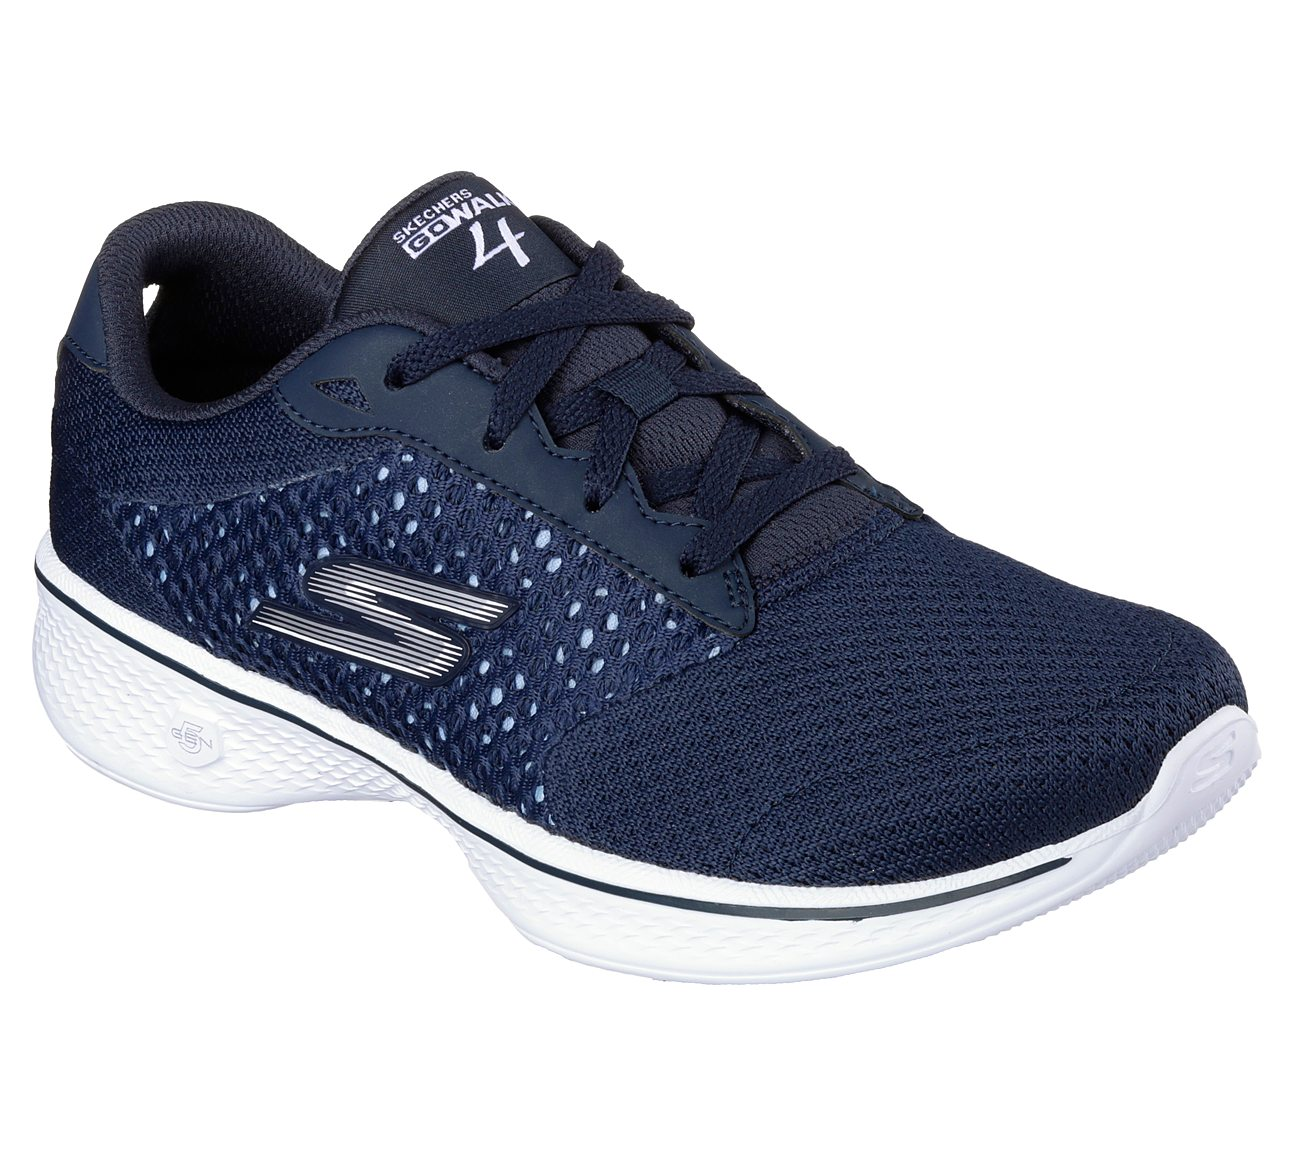 The Most Popular Skechers Gowalk 4 Exceed Walking Shoes